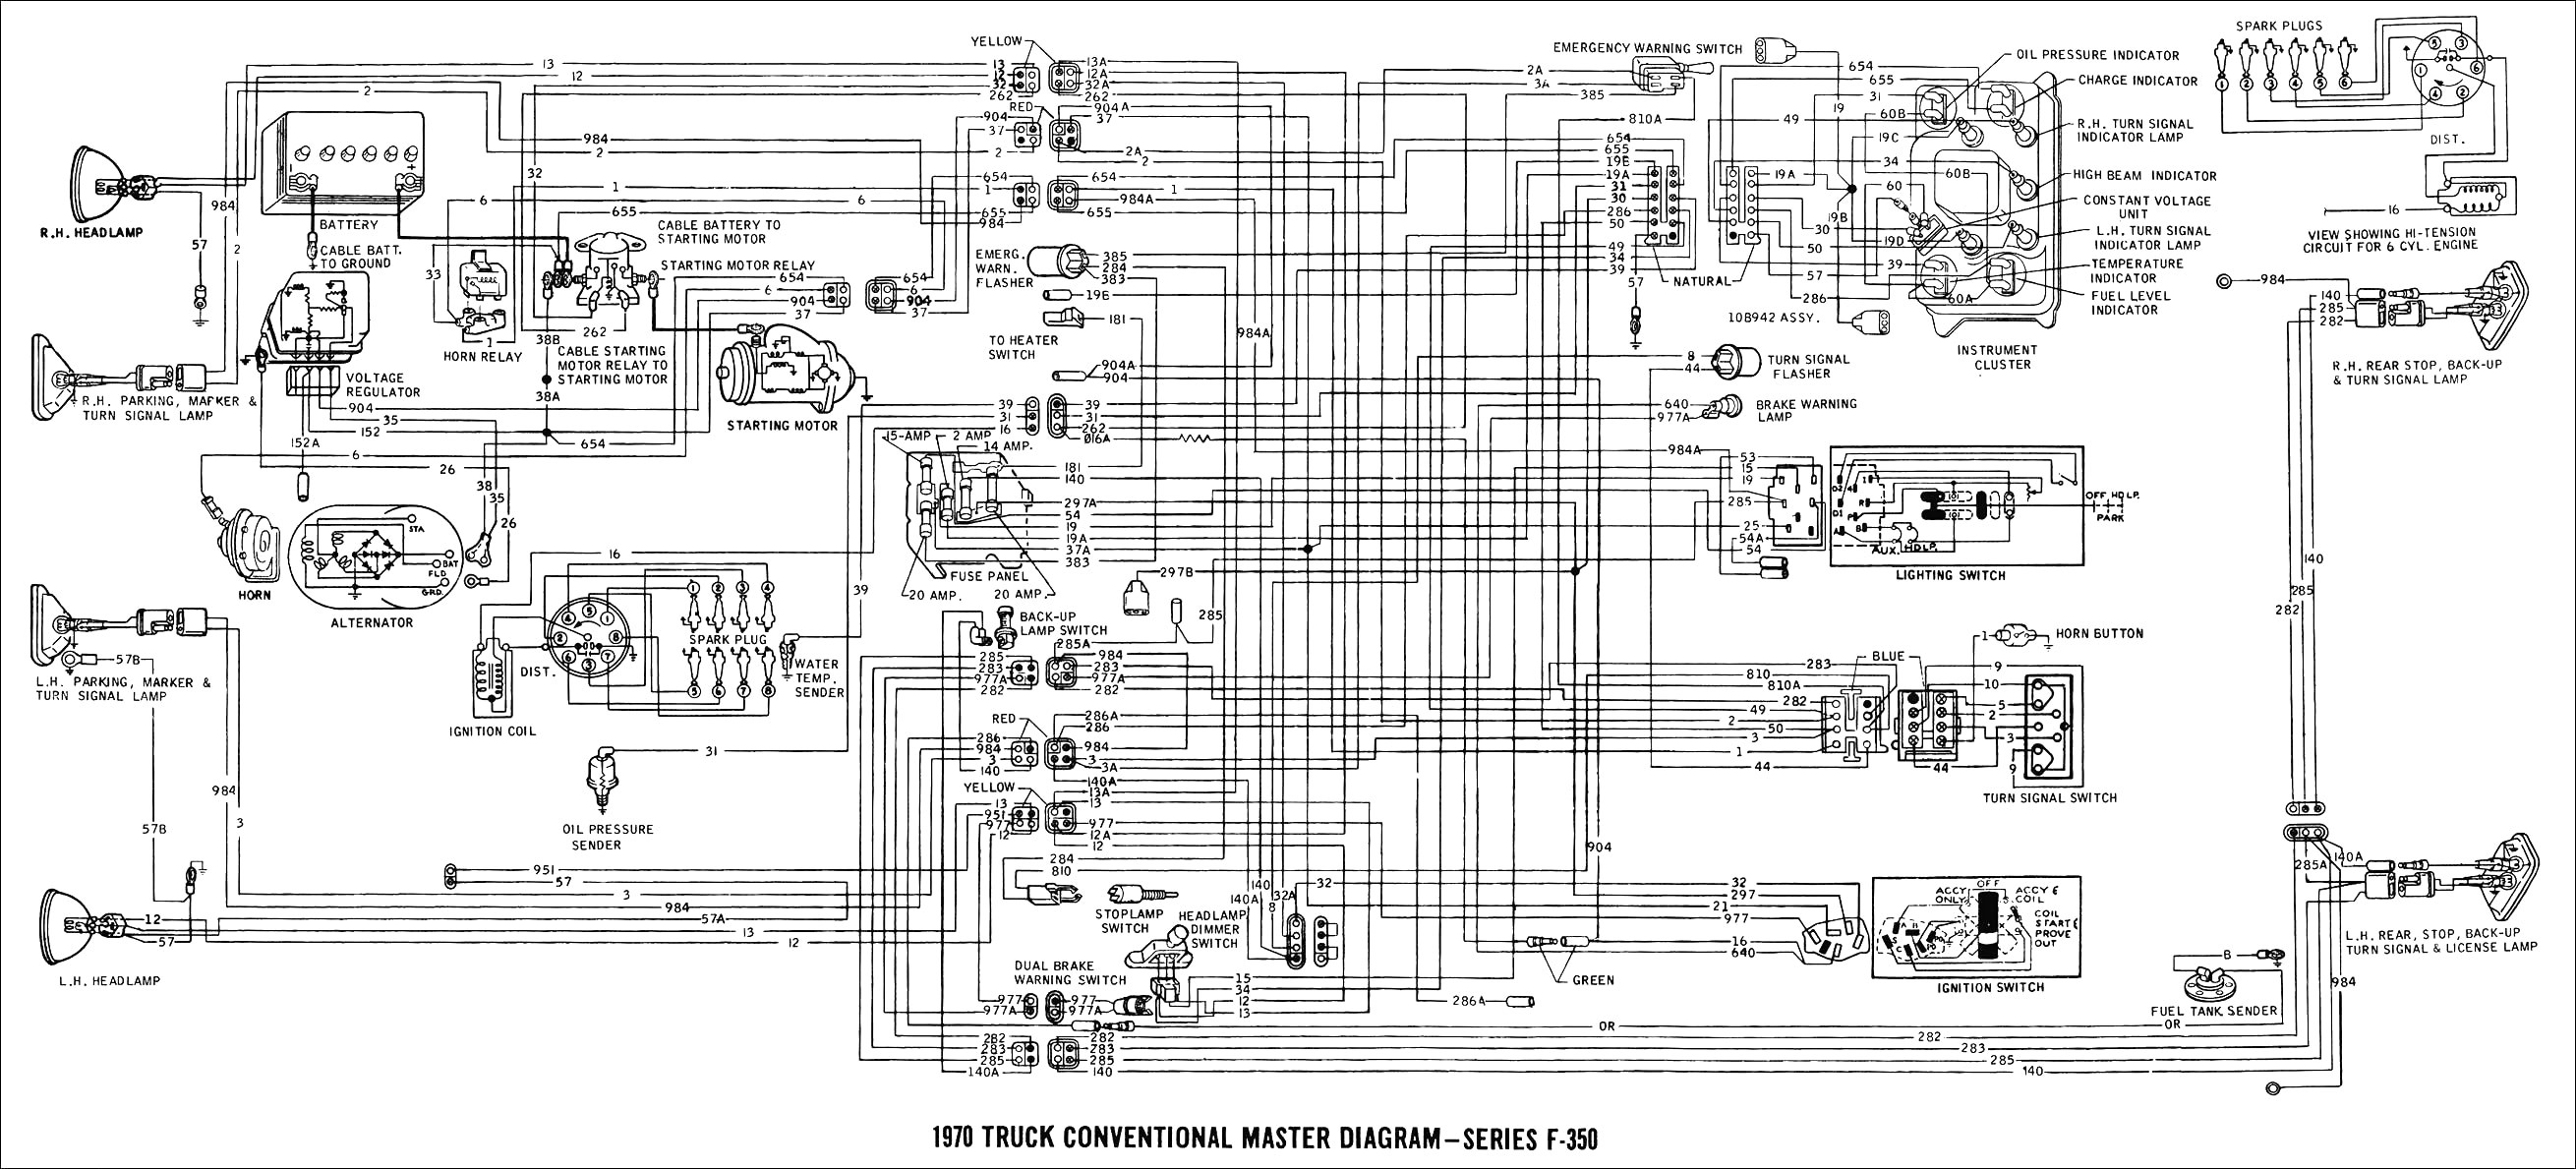 5600 ford tractor wiring diagram ford 5900 wiring diagram Ford Mustang Wiring Diagram